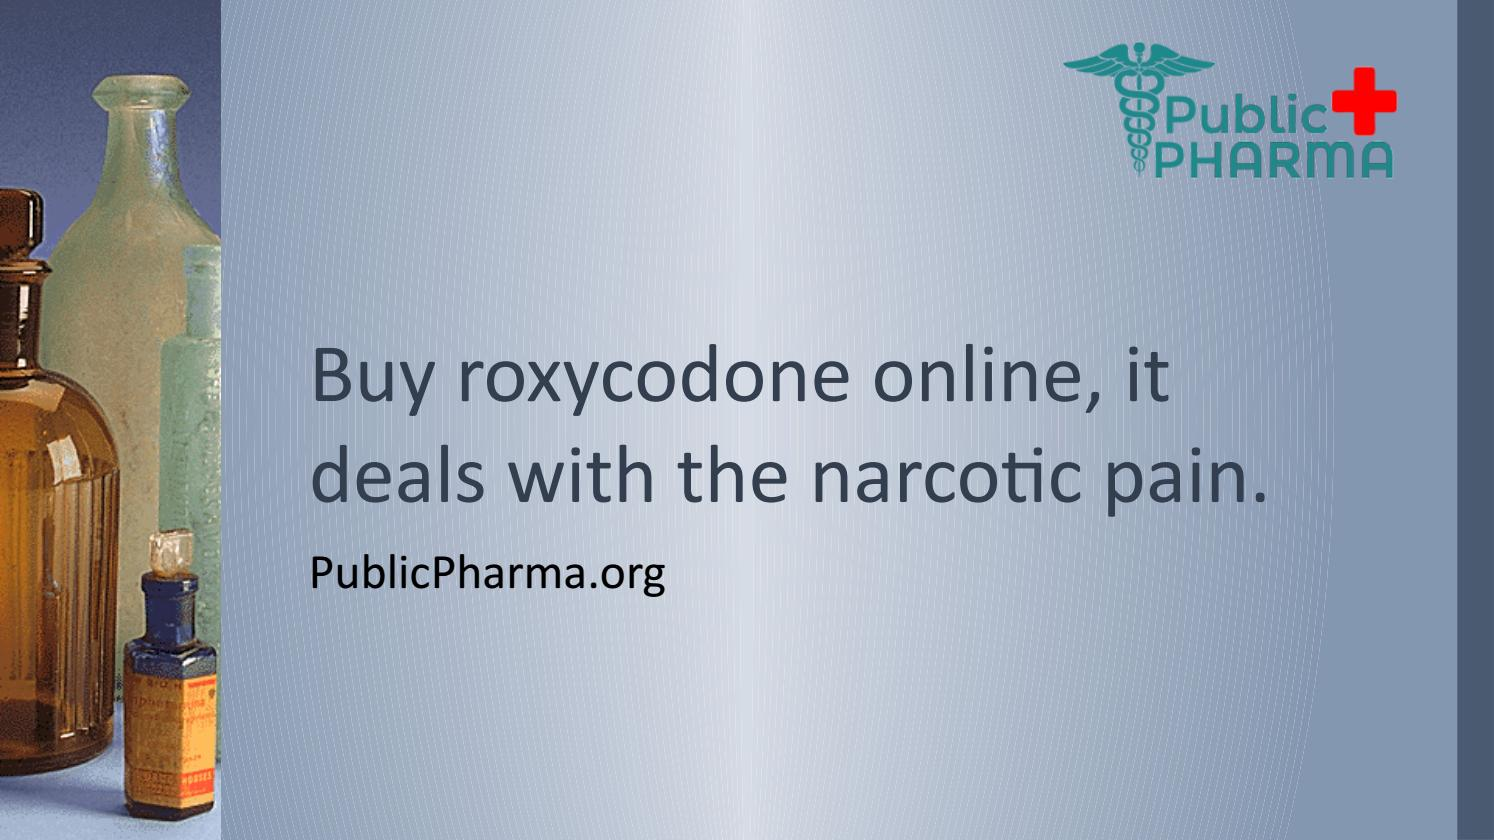 3f5a2ae84403 Buy roxycodone online, it deals with the narcotic pain. by Sophia ...